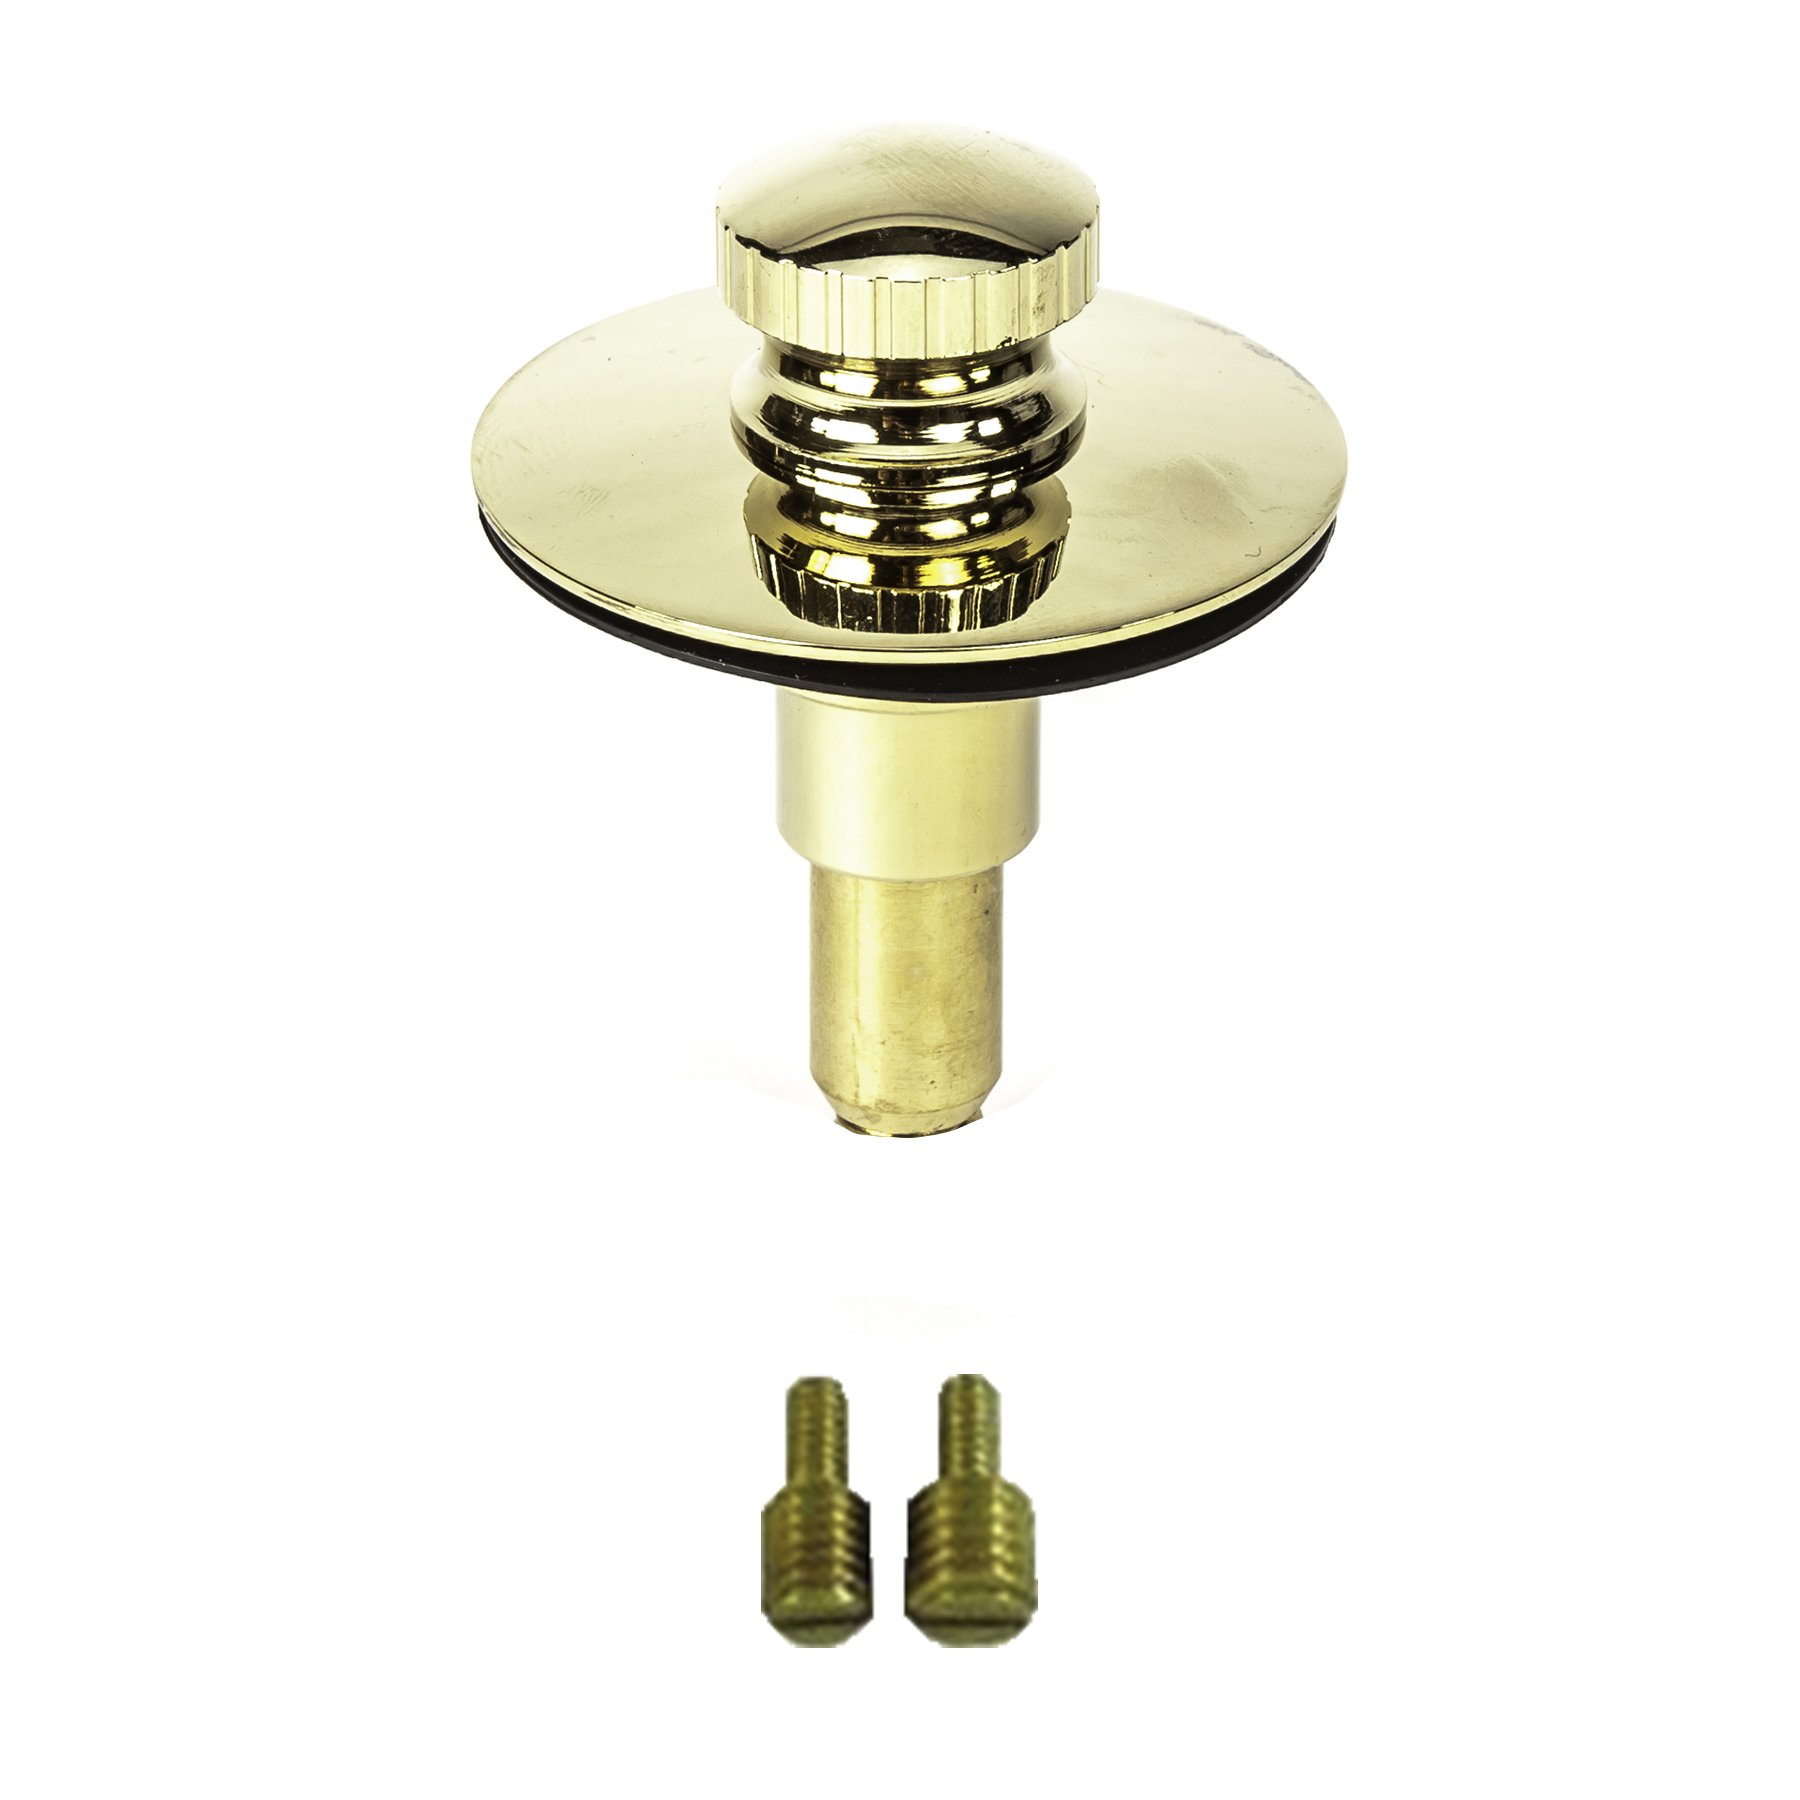 PF WaterWorks Universal Lift n Lock (Push Pull) Bath Tub/Bathtub Drain Stopper includes 3/8'' and 5/16'' Fittings; Polished Brass; PF0955-PB-LL-S